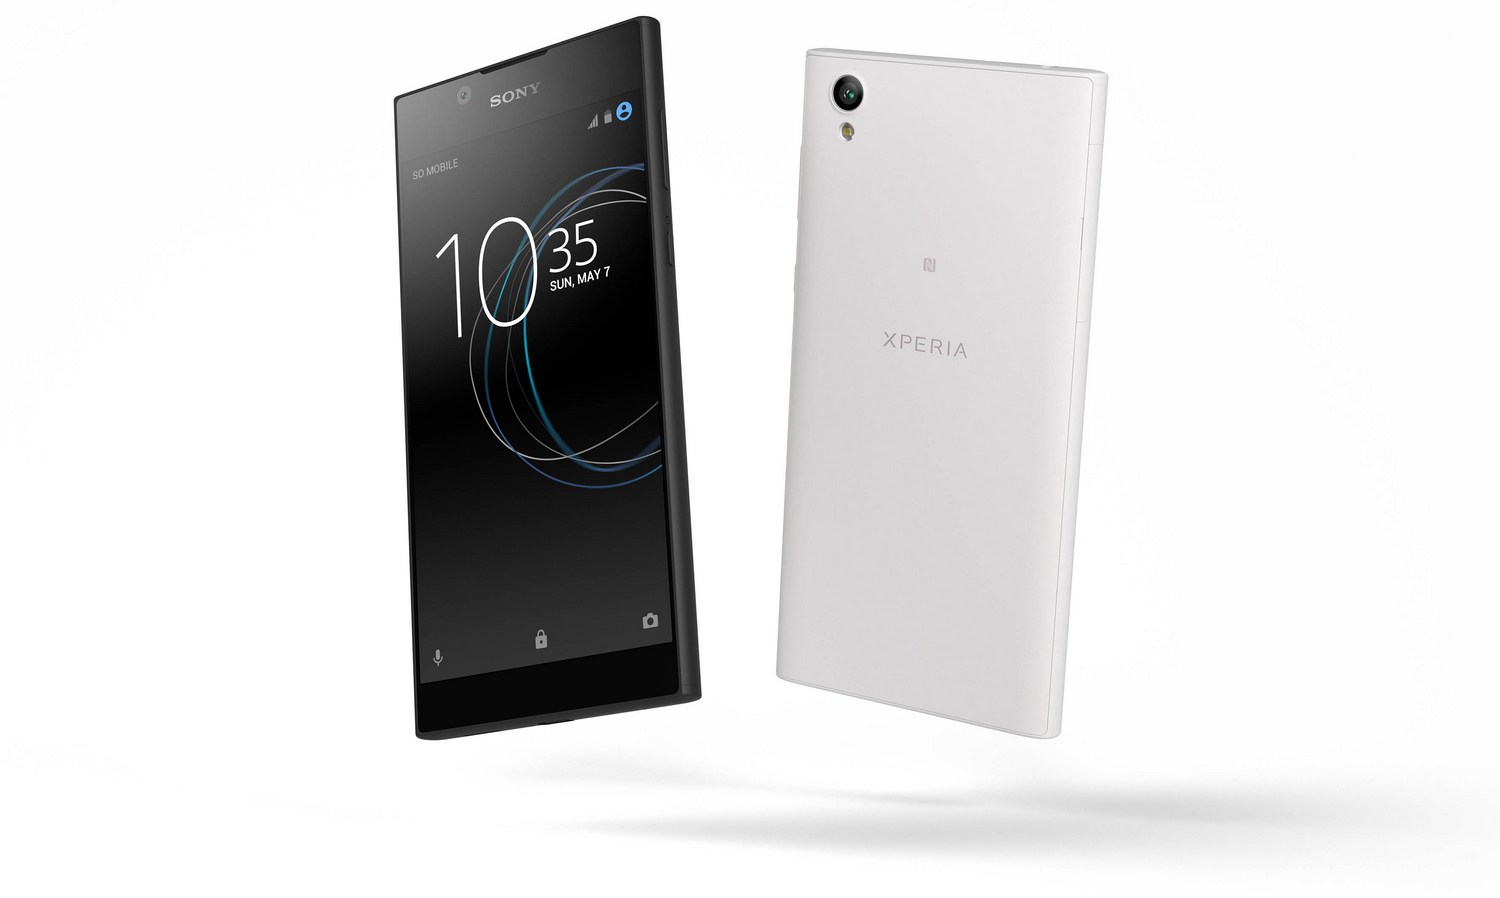 das xperia l1 die neue einstiegsklasse von sony hartware. Black Bedroom Furniture Sets. Home Design Ideas